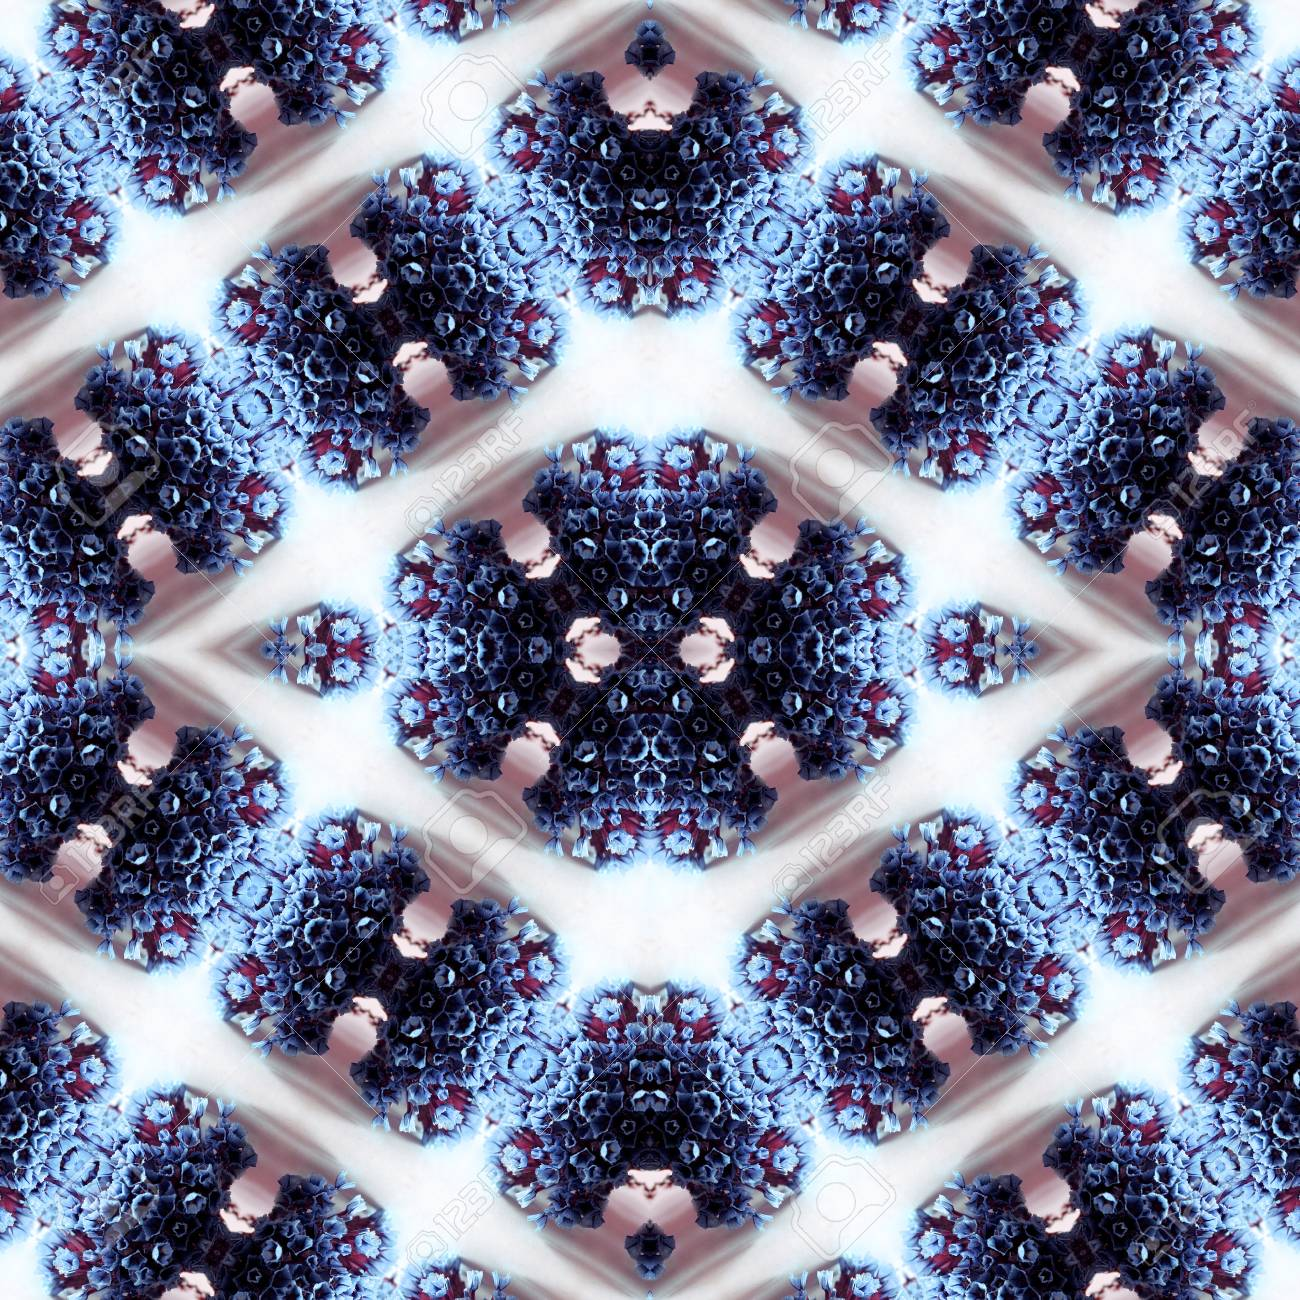 Abstract flowers seamless pattern background. Kaleidoscope from flowers. Hydraulic tile design. - 104075031